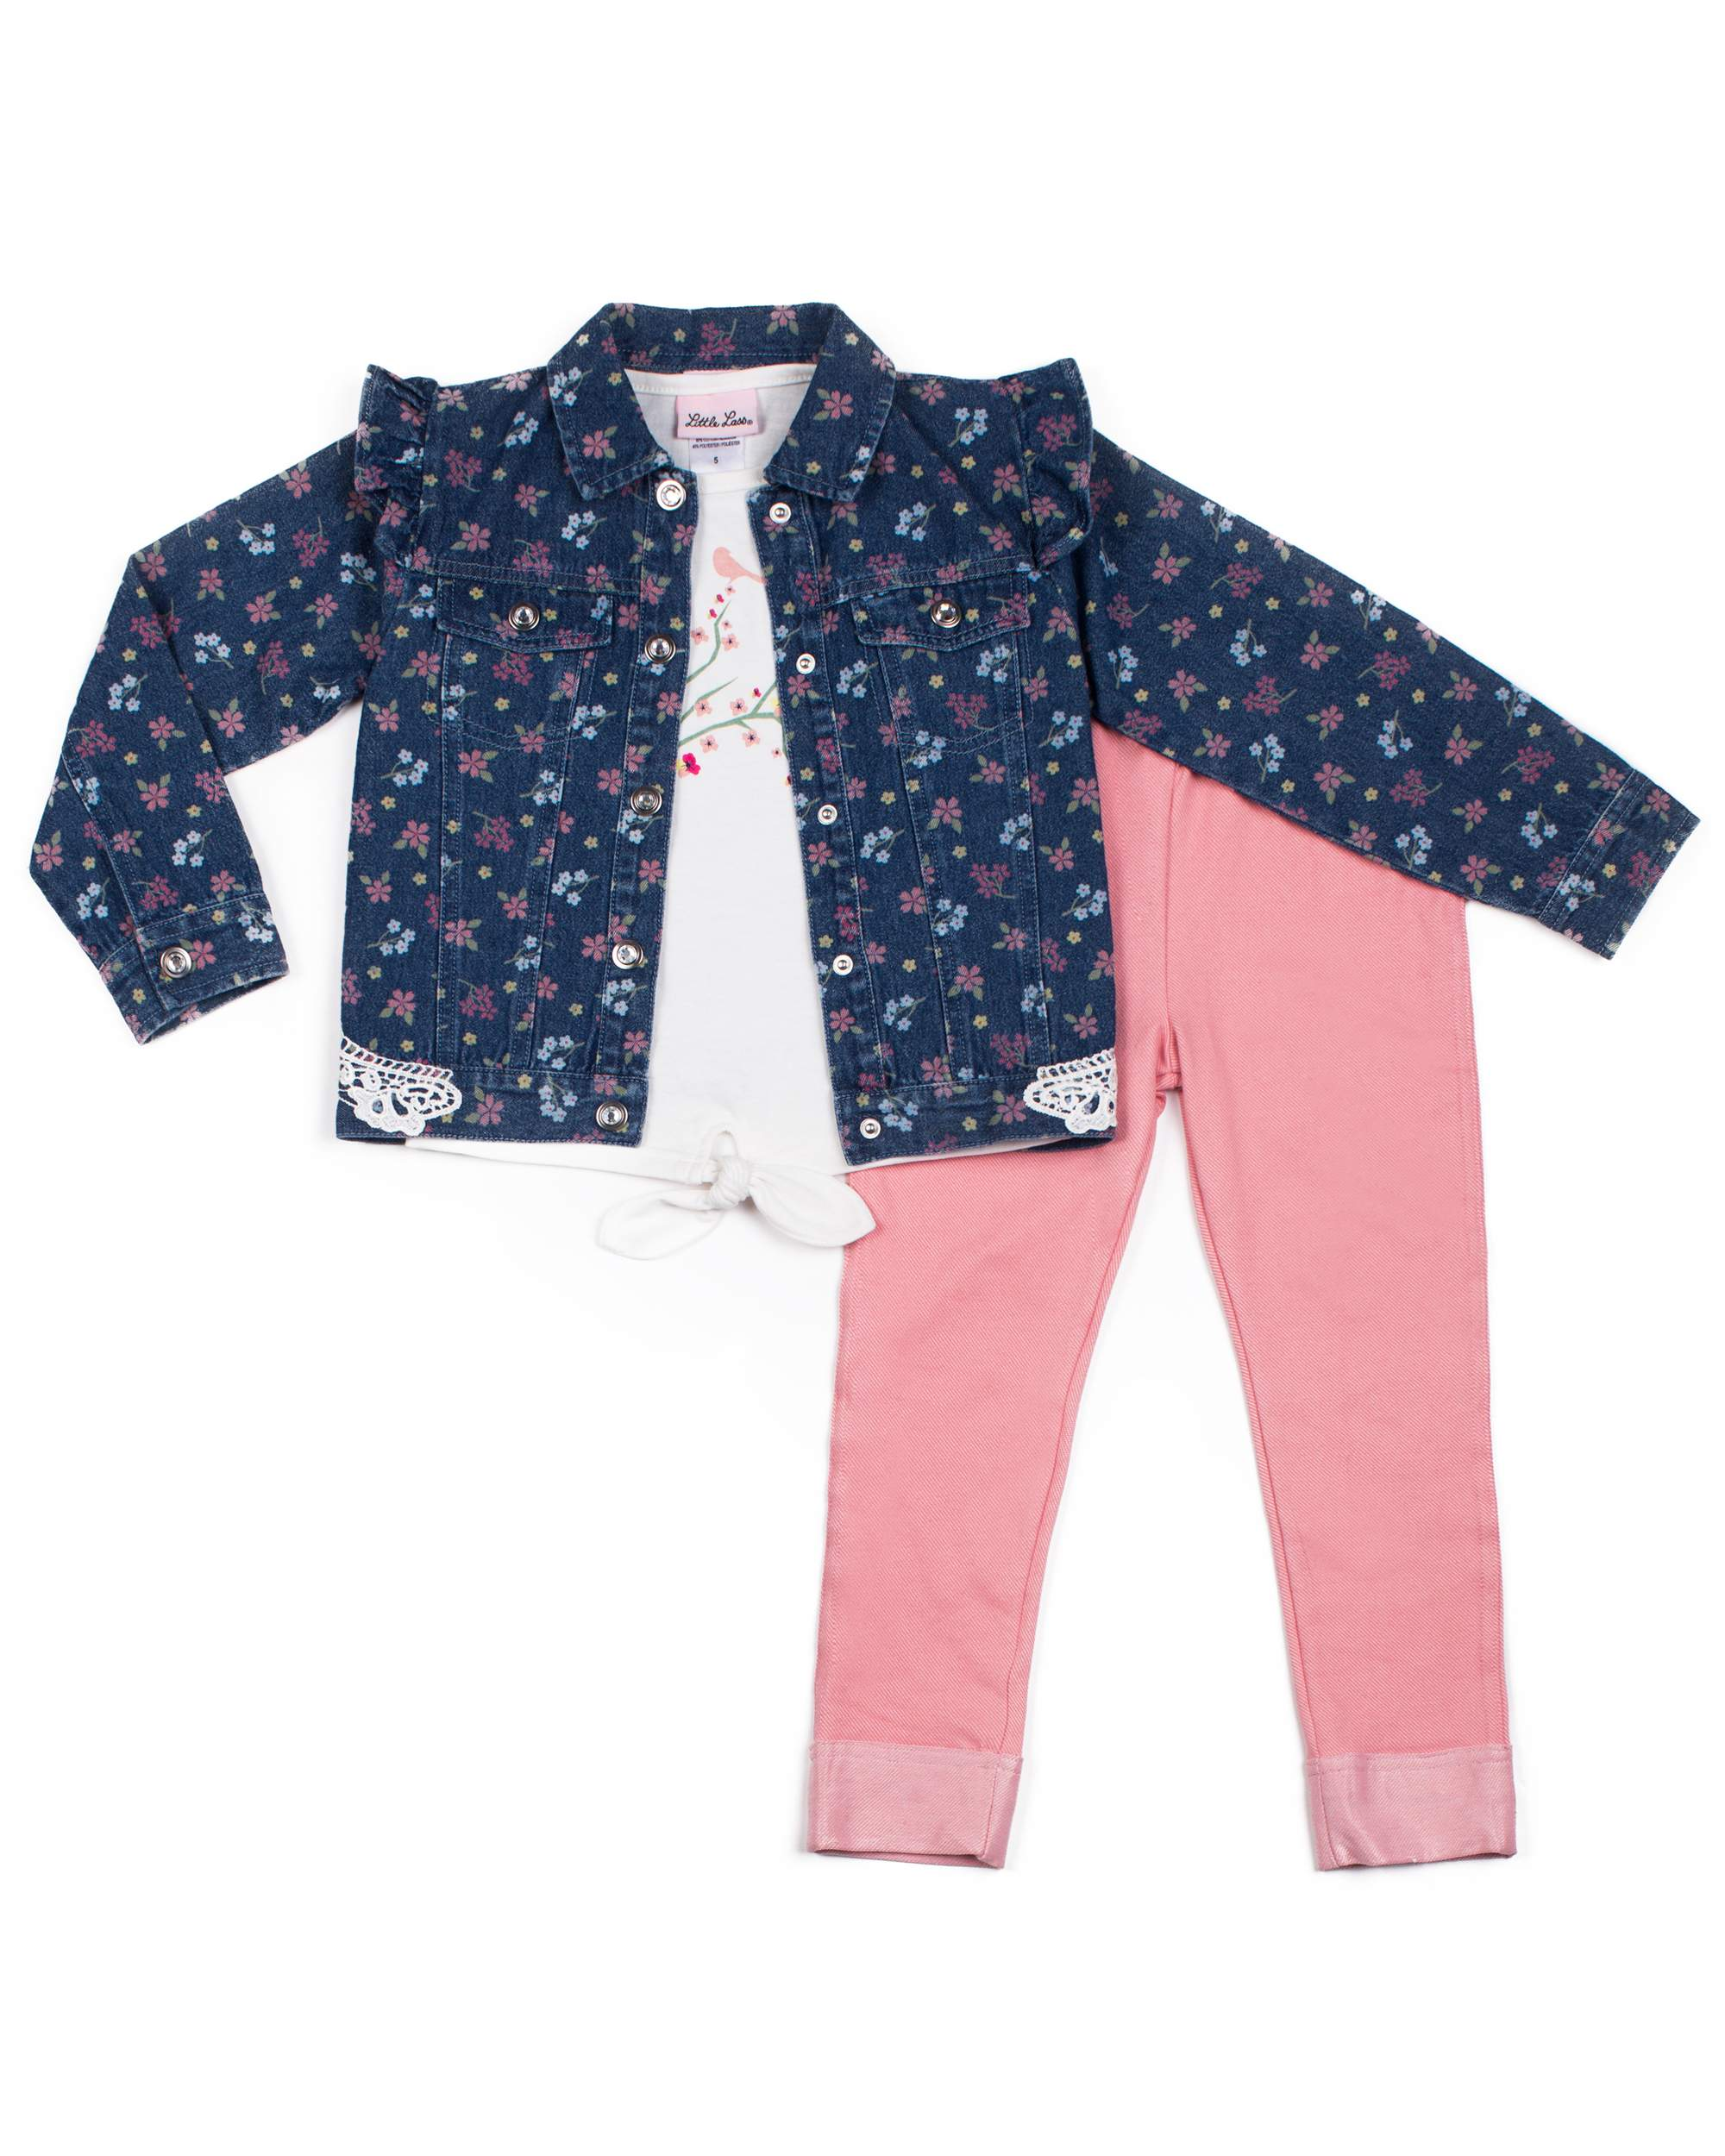 Printed Denim Jacket, Tie Front Tee and Legging, 3-Piece Outfit Set (Little Girls)